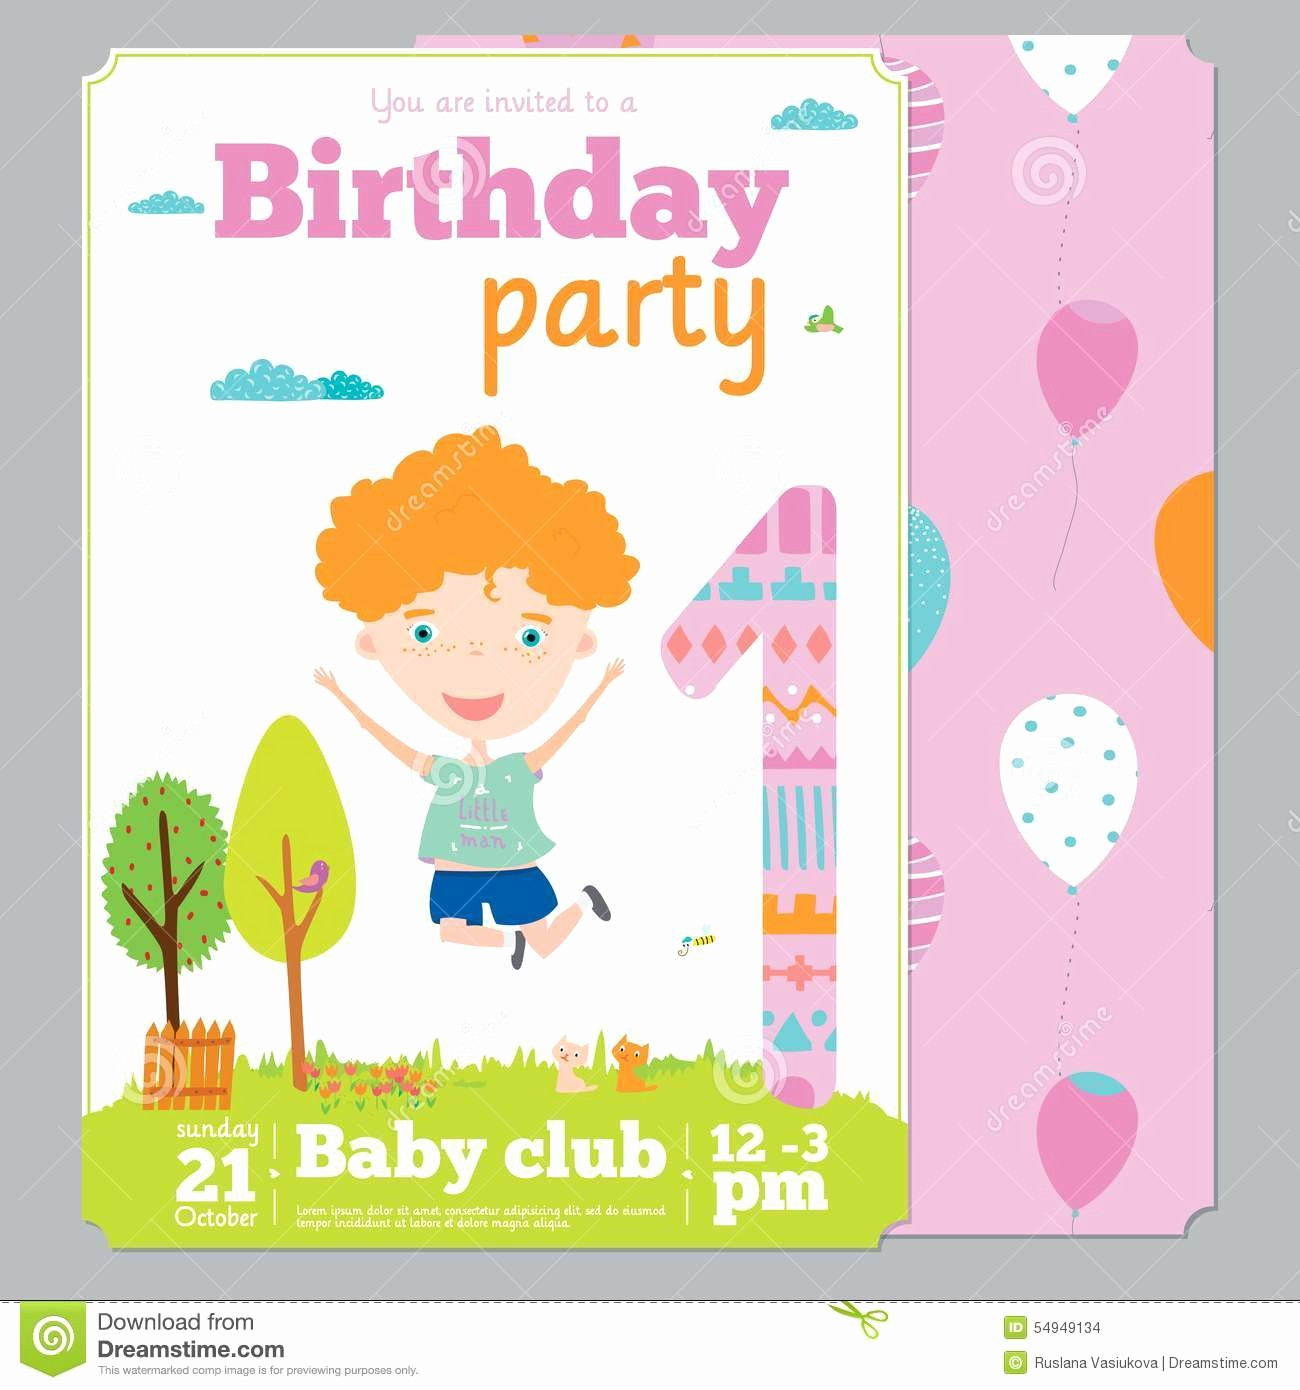 Birthday Invitation Card Template Free Lovely Birthday Party Invitation Card Template with Cute Stock